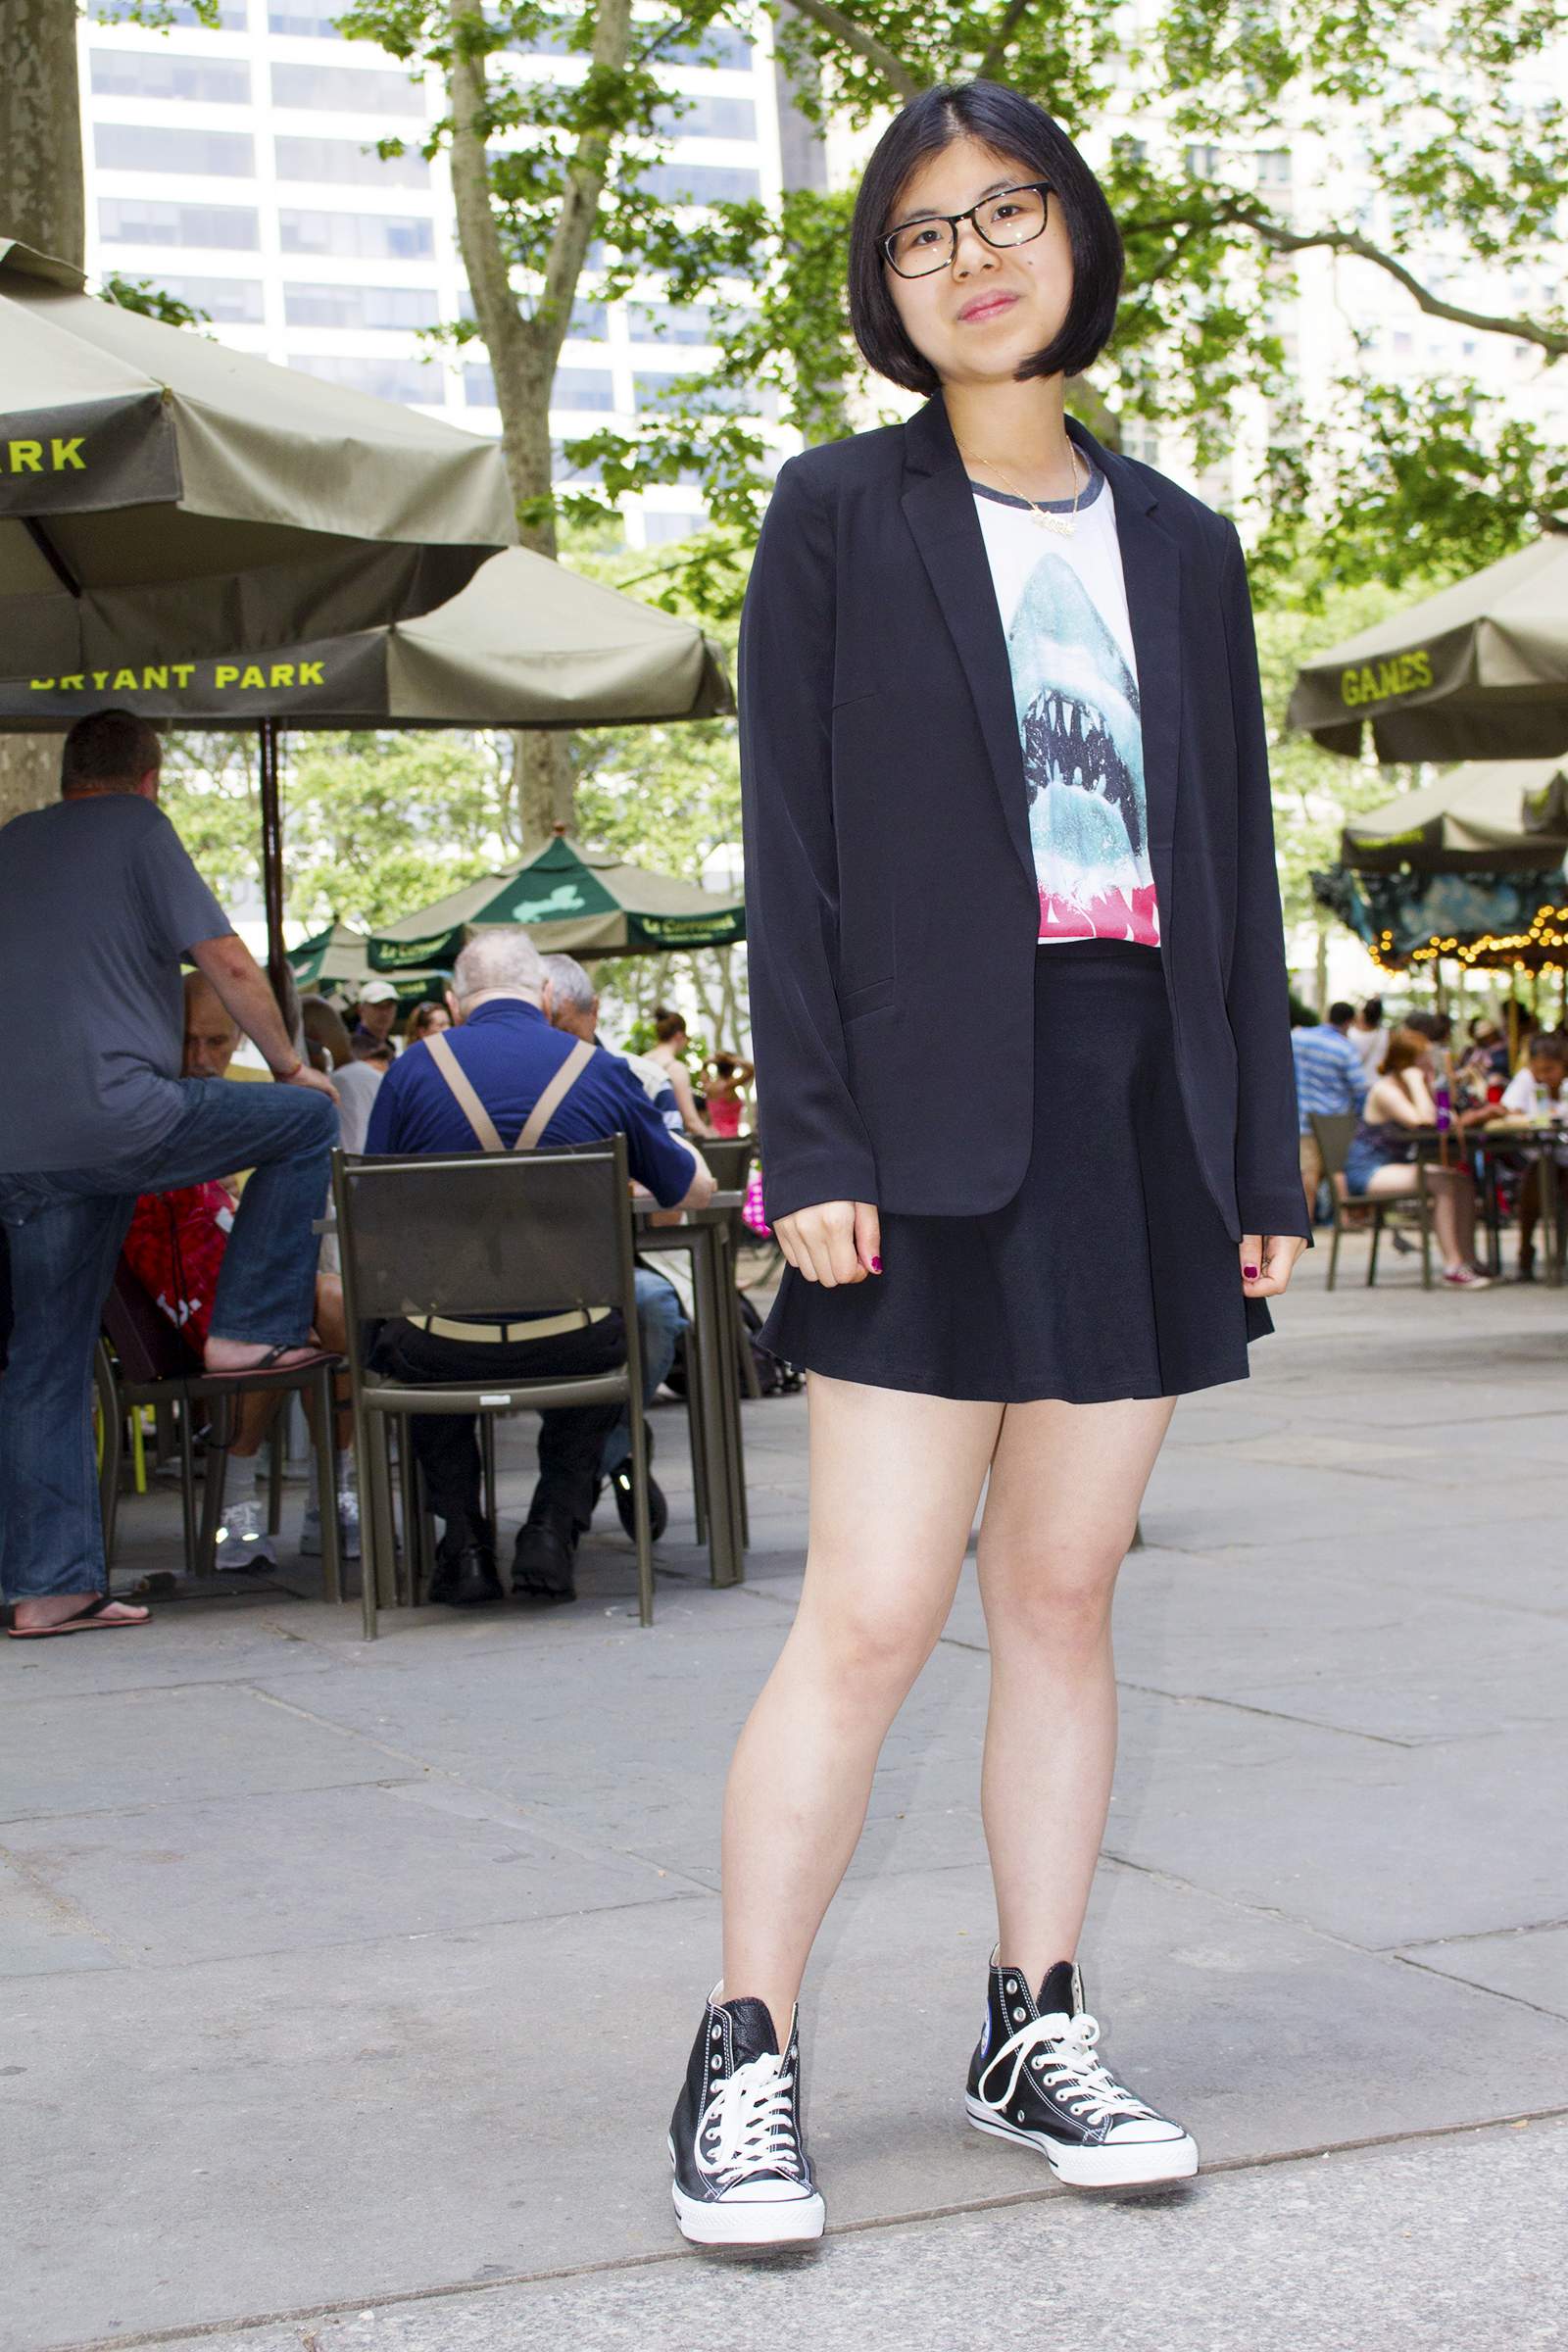 A trip into New York City's Grand Central Station featuring a fun casual outfit with Jaws movie graphic tee, skater skirt, leather Converses and blazer